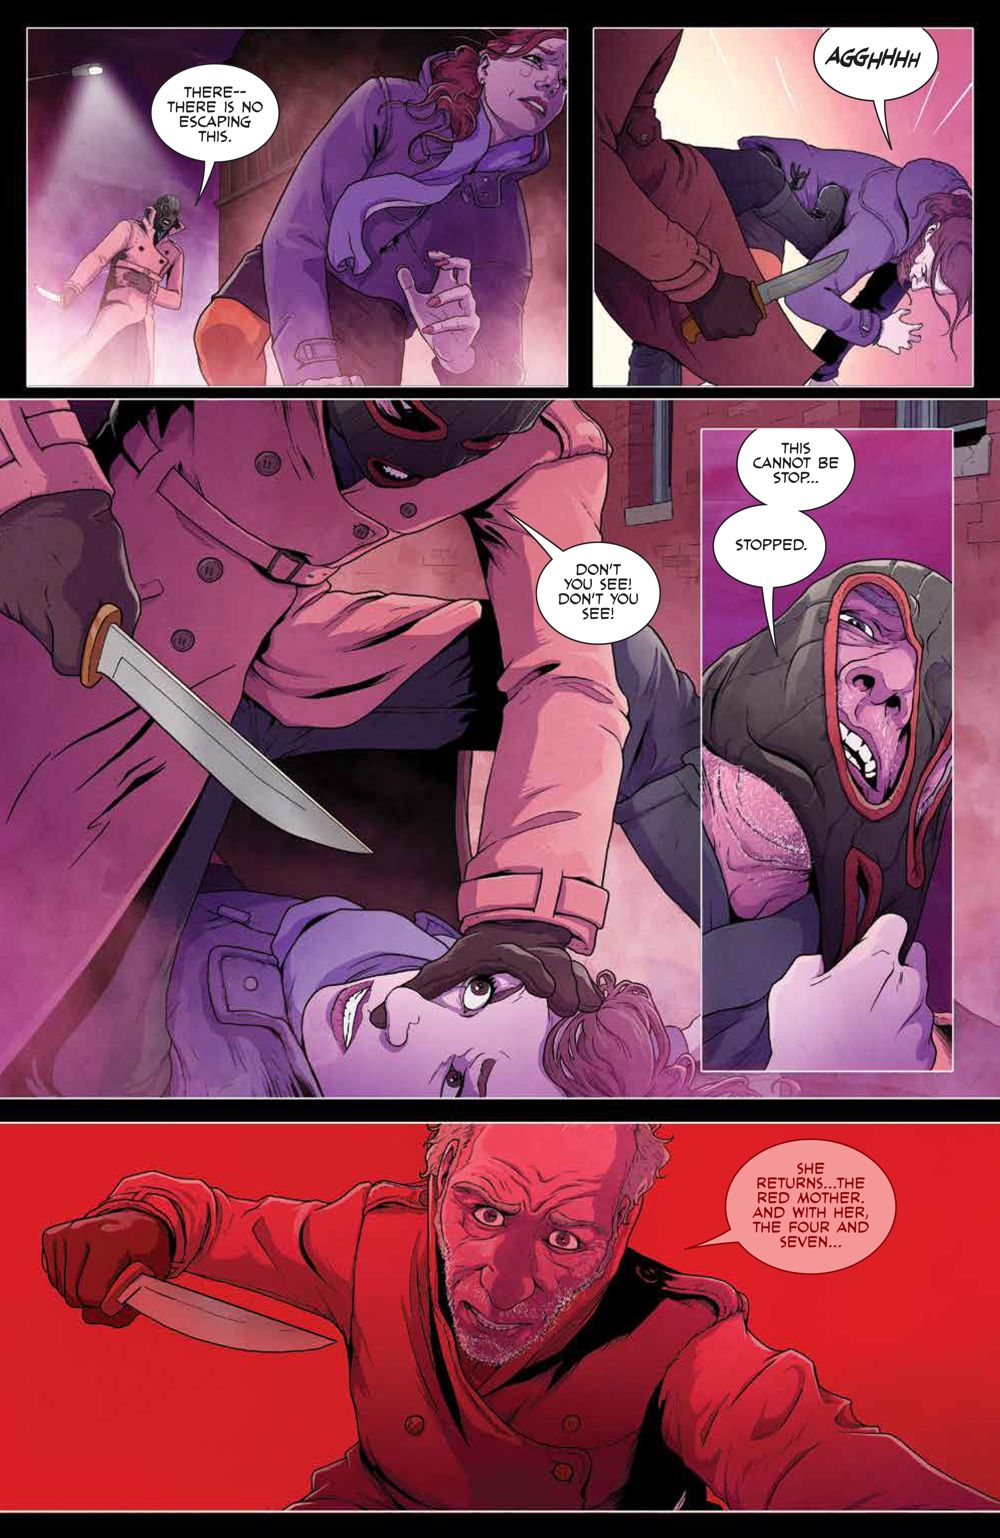 RedMother_010_PRESS_5 ComicList Previews: THE RED MOTHER #10